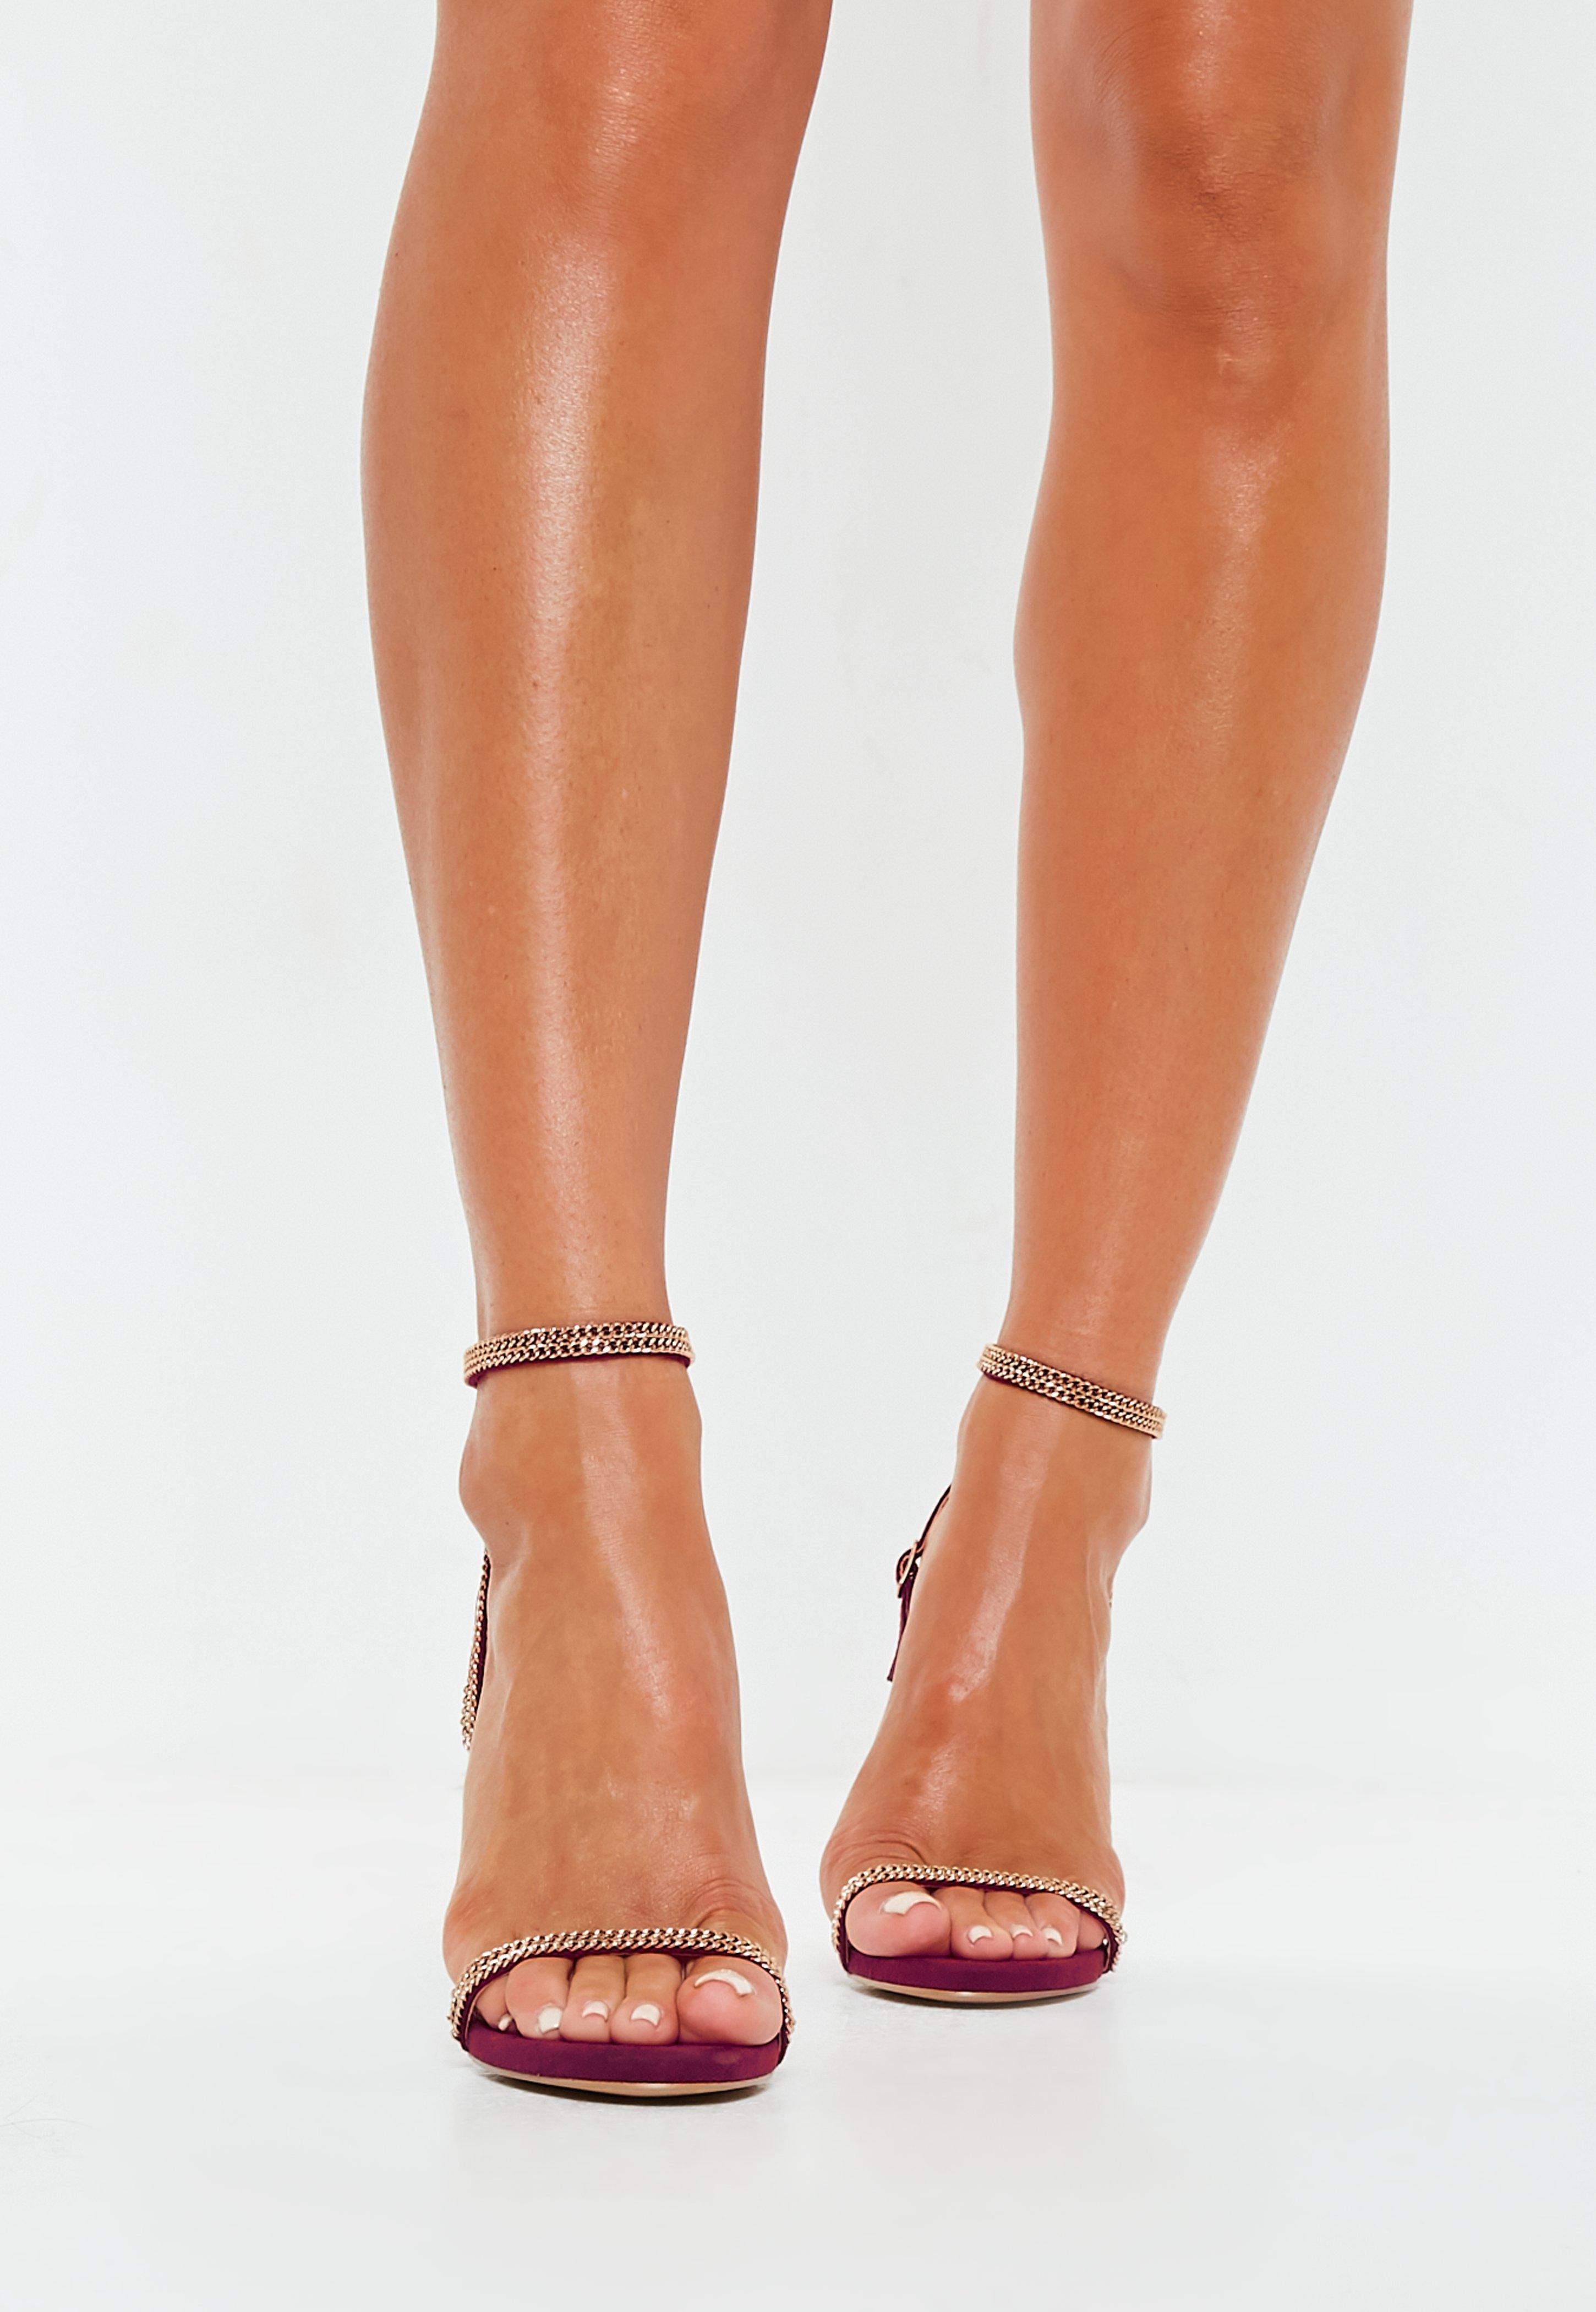 670a8edf537 Missguided Burgundy Chain Trim Barely There Heels - Lyst